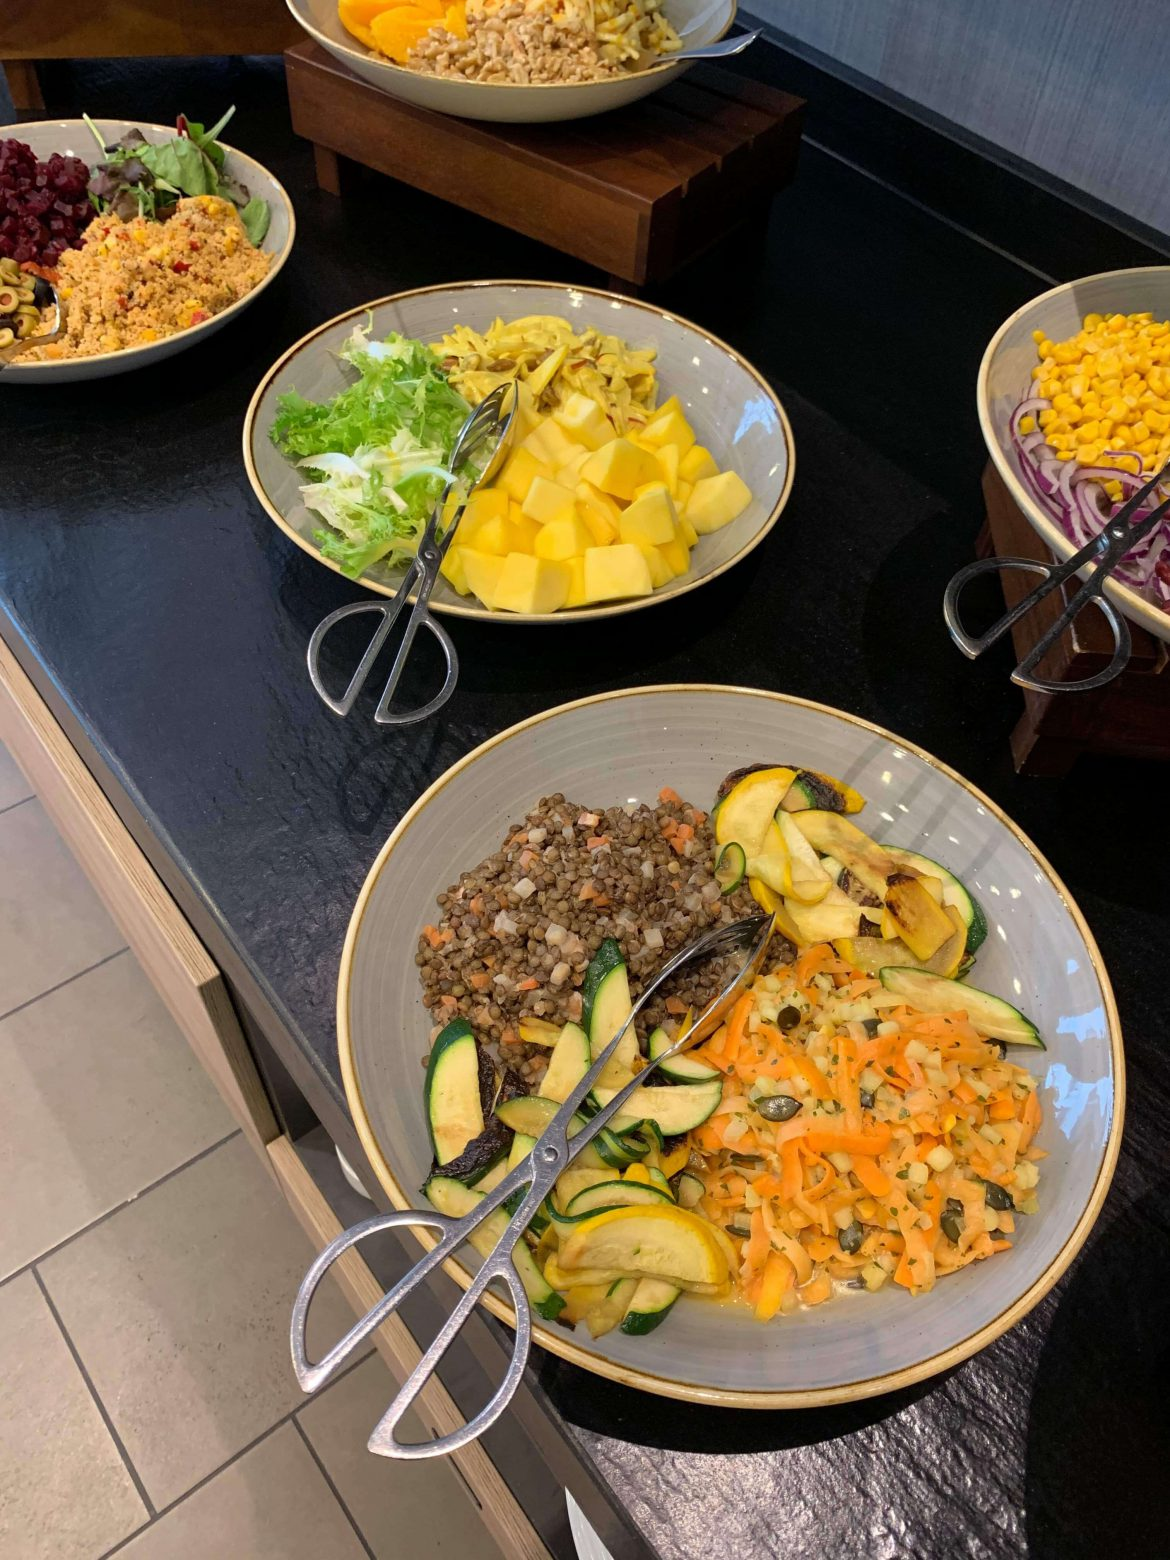 Swiss Blog Family 2019: Eine Auswahl vom Salatbuffet: Hotel Courdyard by Marriot Zürich